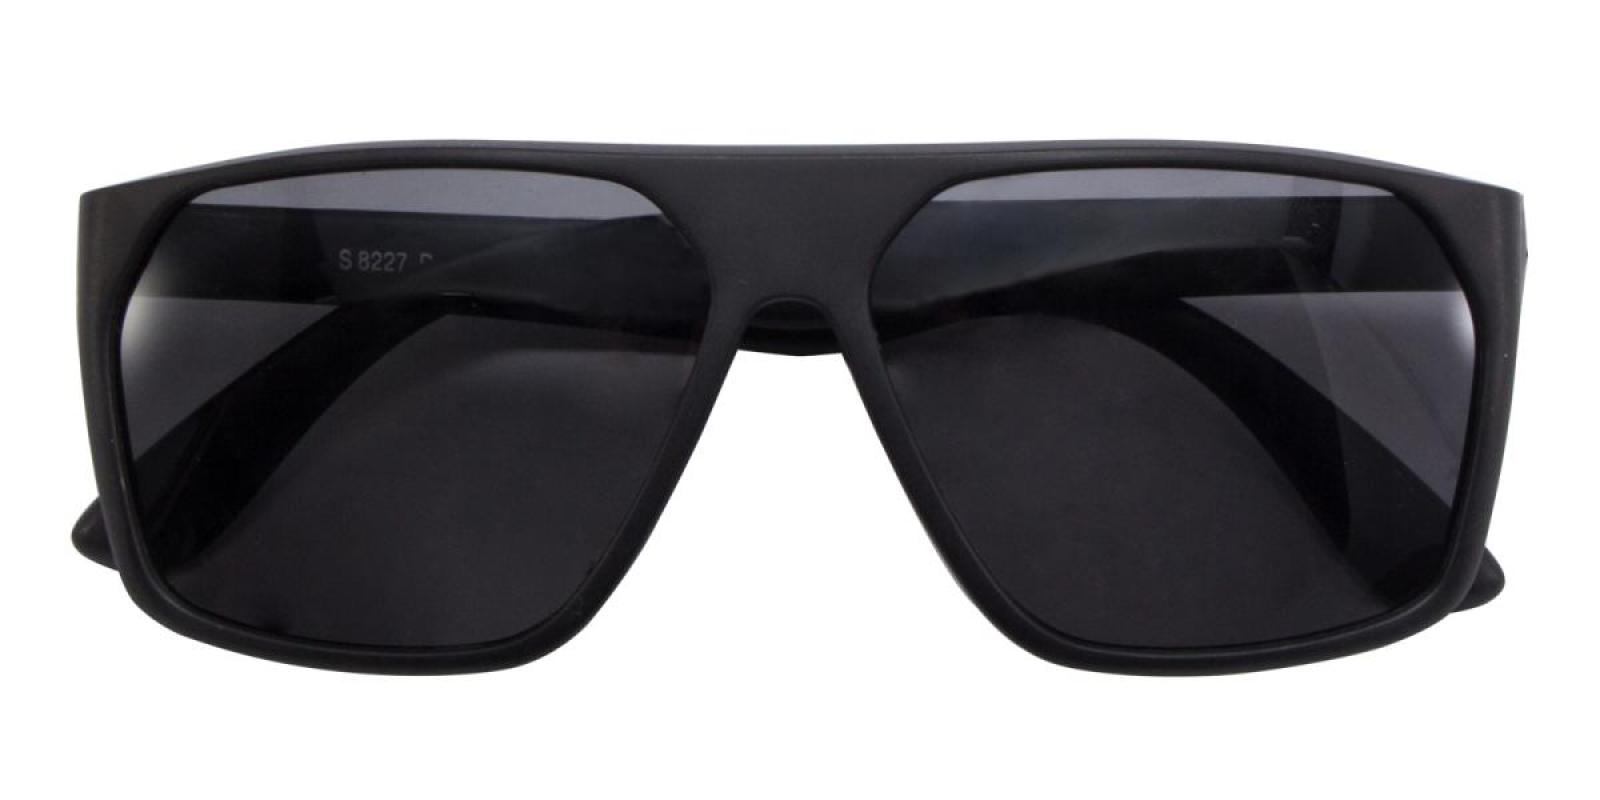 Blackore-Black-Geometric-TR-Sunglasses-detail